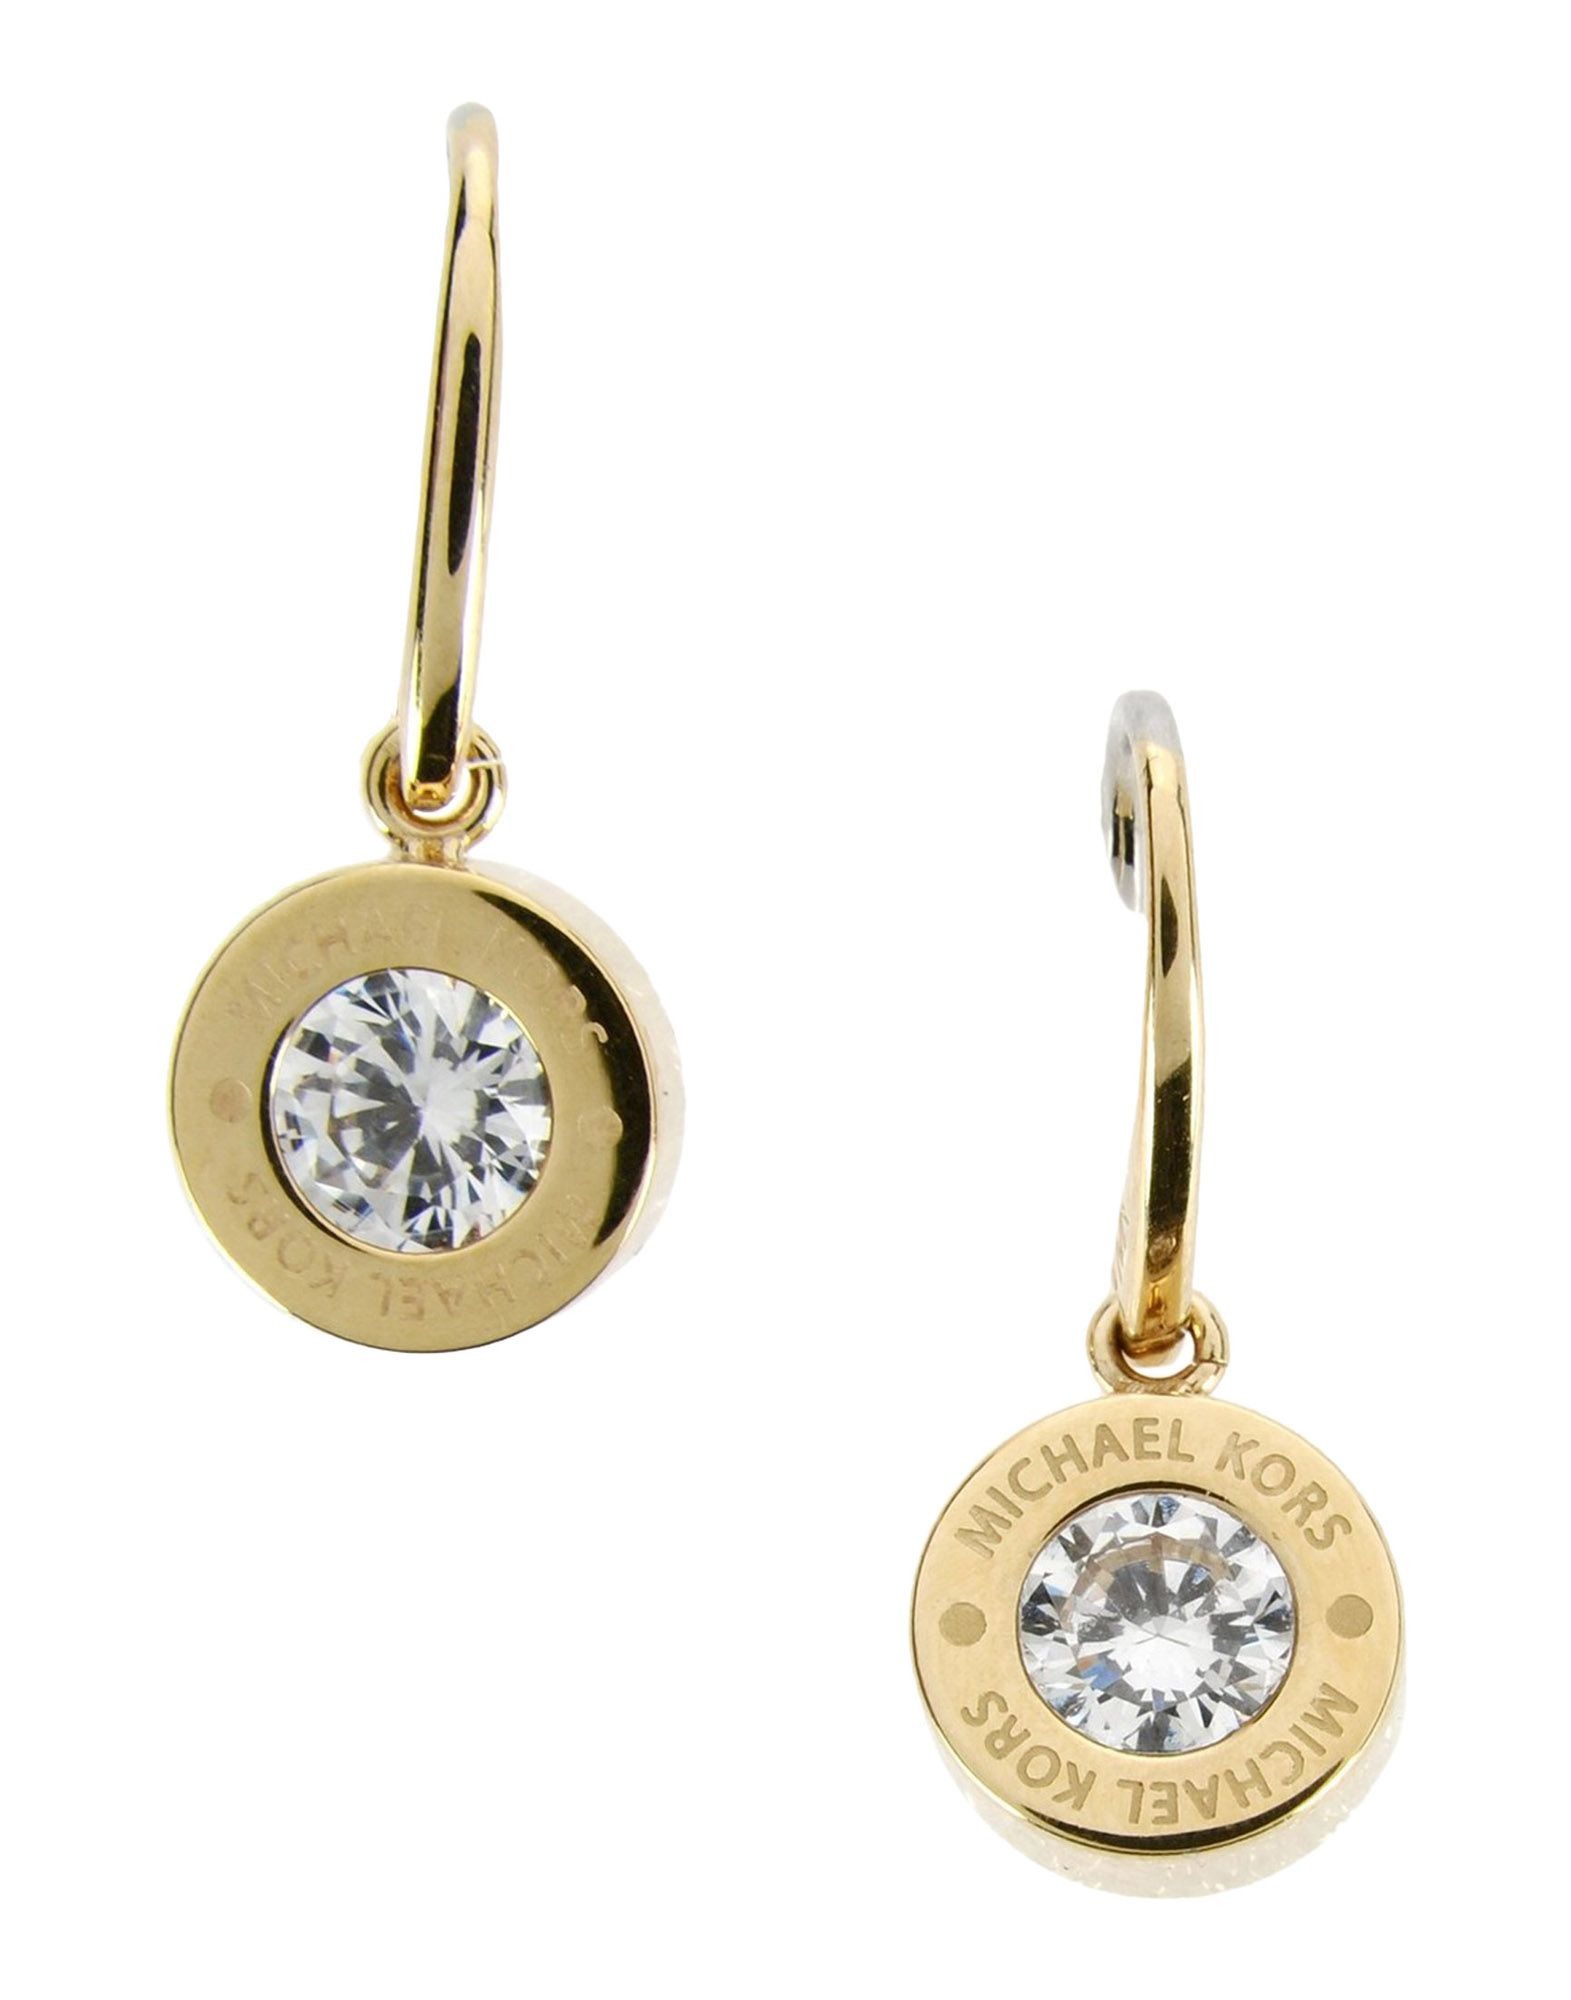 Michael kors earrings in metallic lyst for Michaels crafts jewelry supplies